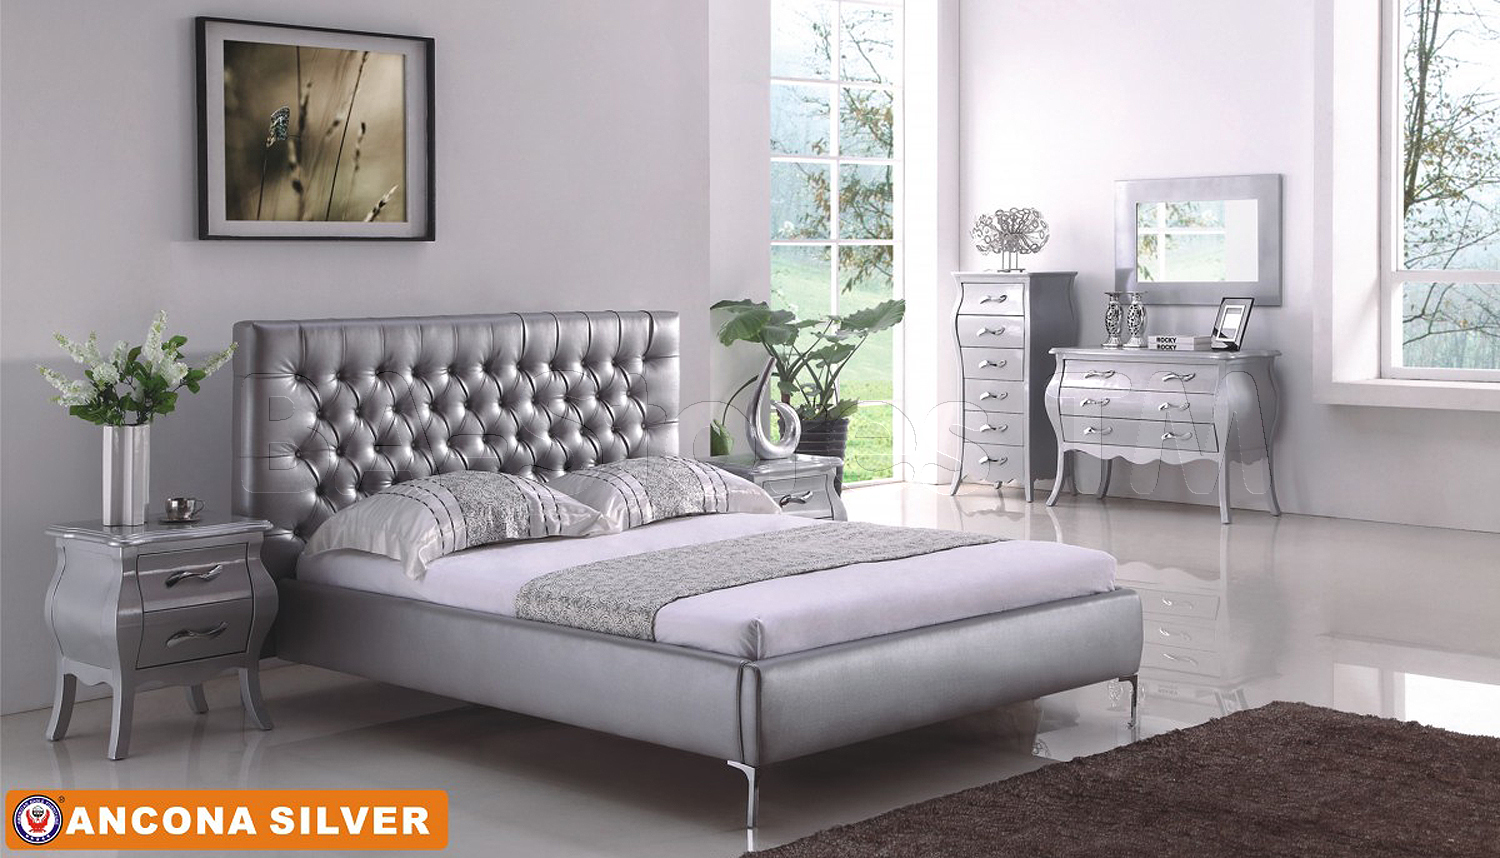 silver bedroom sets photo - 5